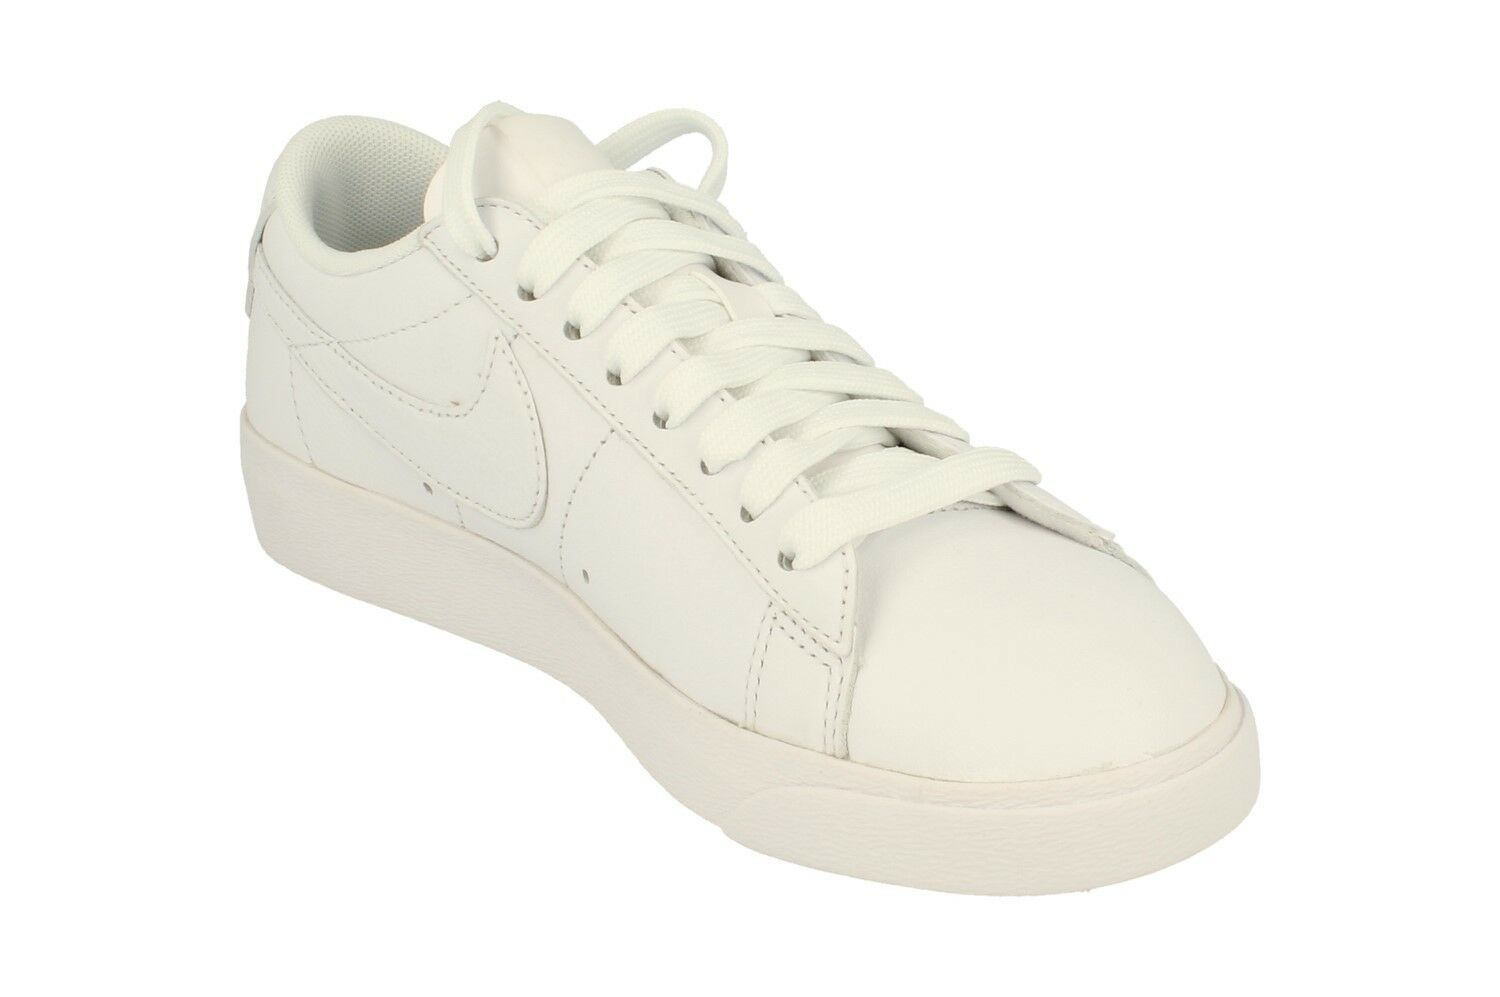 Nike Womens Blazer Low Le Trainers Trainers Trainers Aa3961 Sneakers shoes 104 c774c8